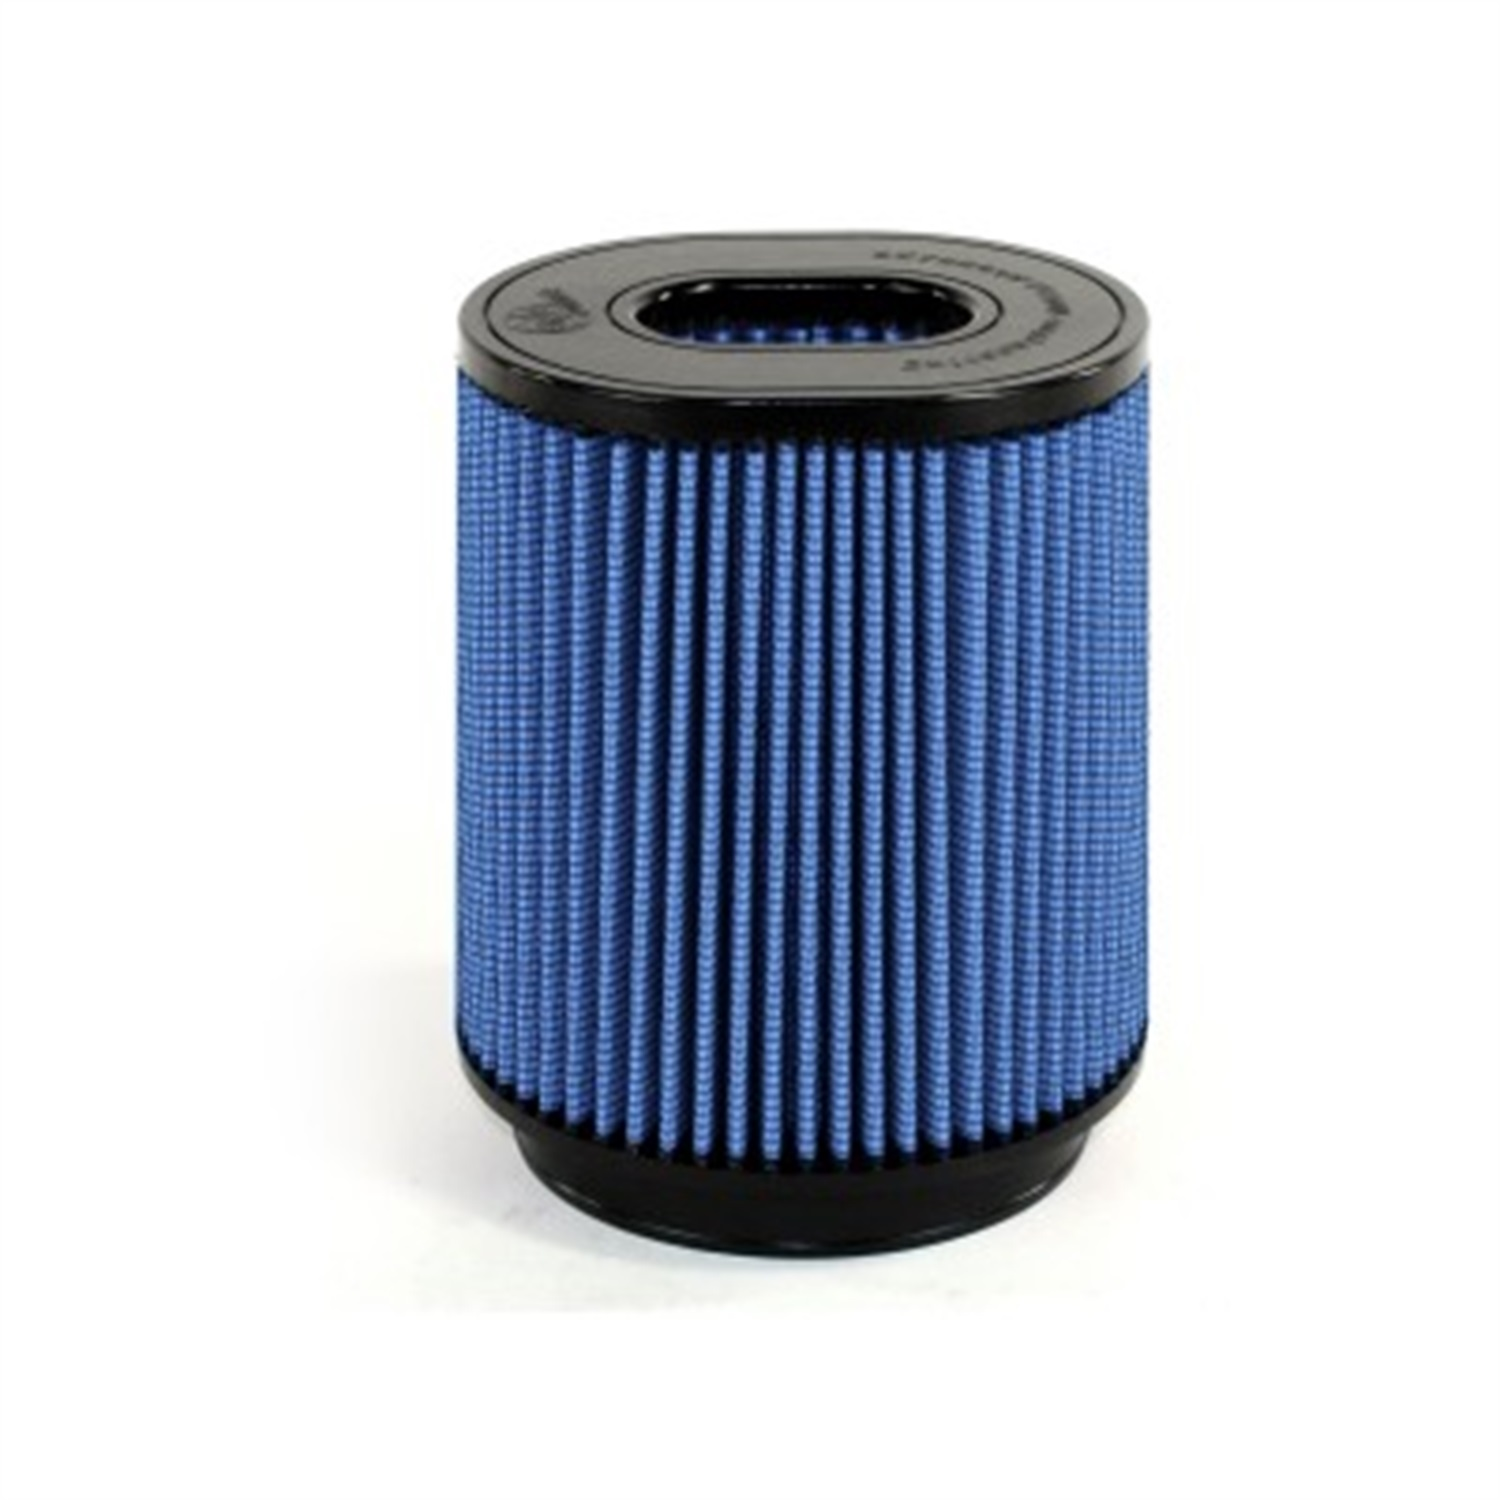 aFe Power 24-91050 MagnumFLOW Universal Clamp On PRO 5R Air Filter 24-91050